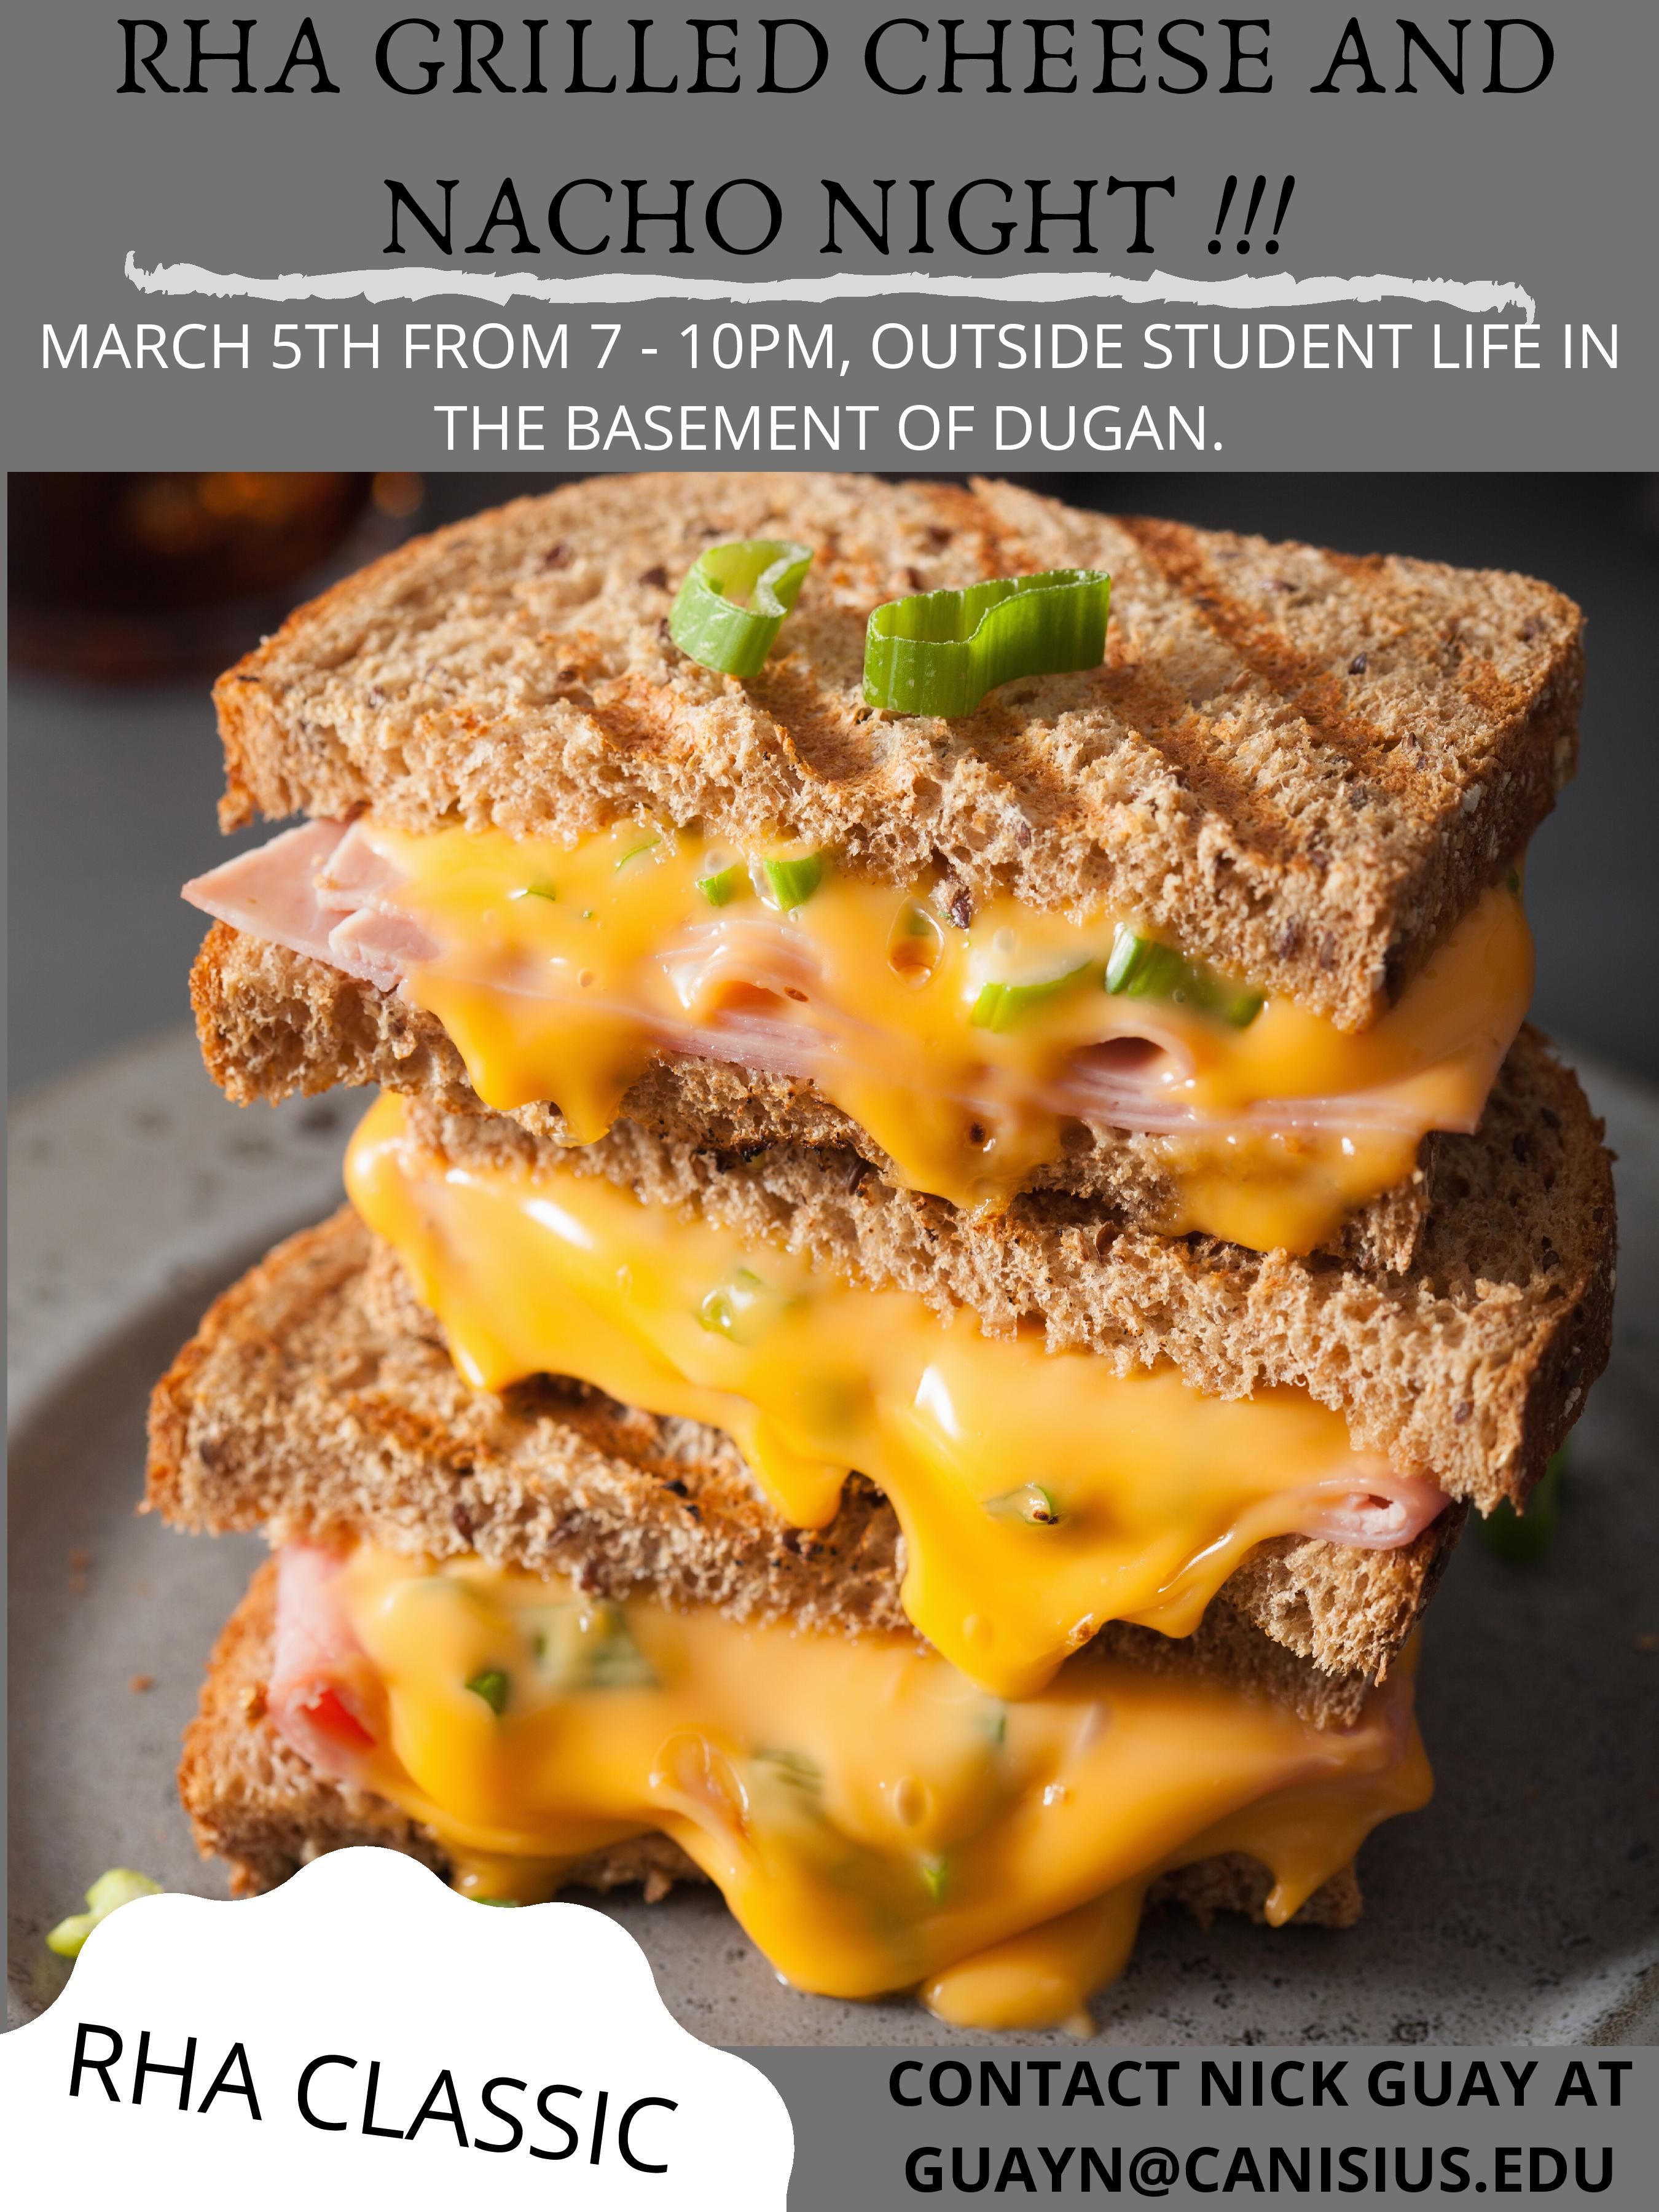 RHA GRILLED CHEESE AND NACHO NIGHT !!!-page-001.jpg